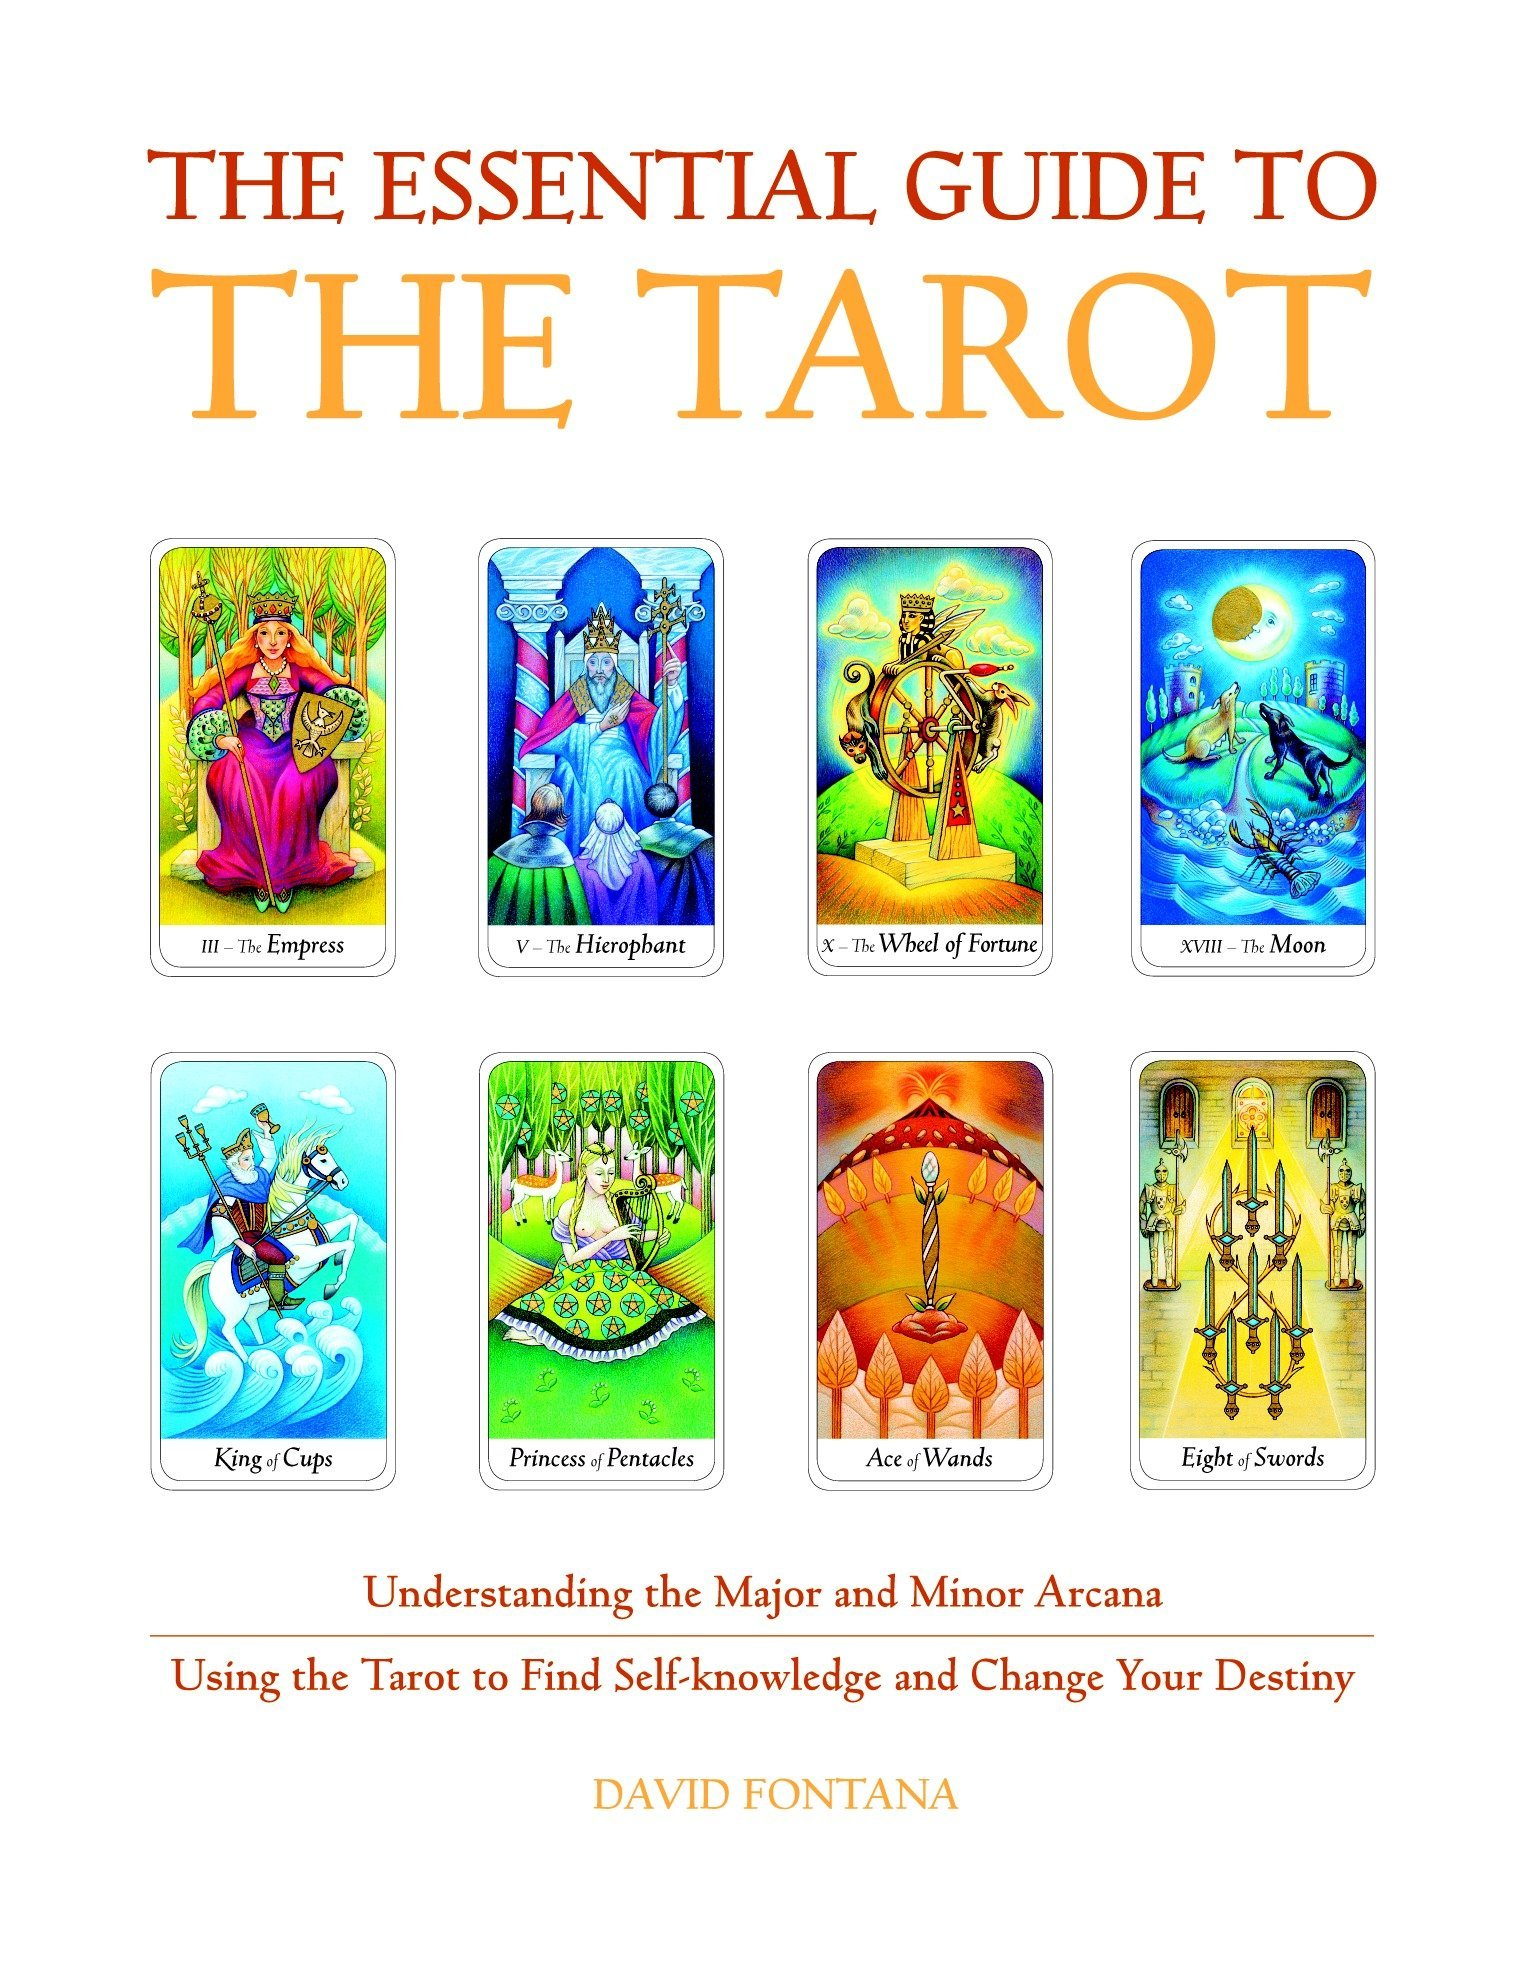 Download The Essential Guide to the Tarot: Understanding the Major and Minor Arcana - Using the Tarot to Find Self-Knowledge and Change Your Destiny (Essential Guides Series) PDF